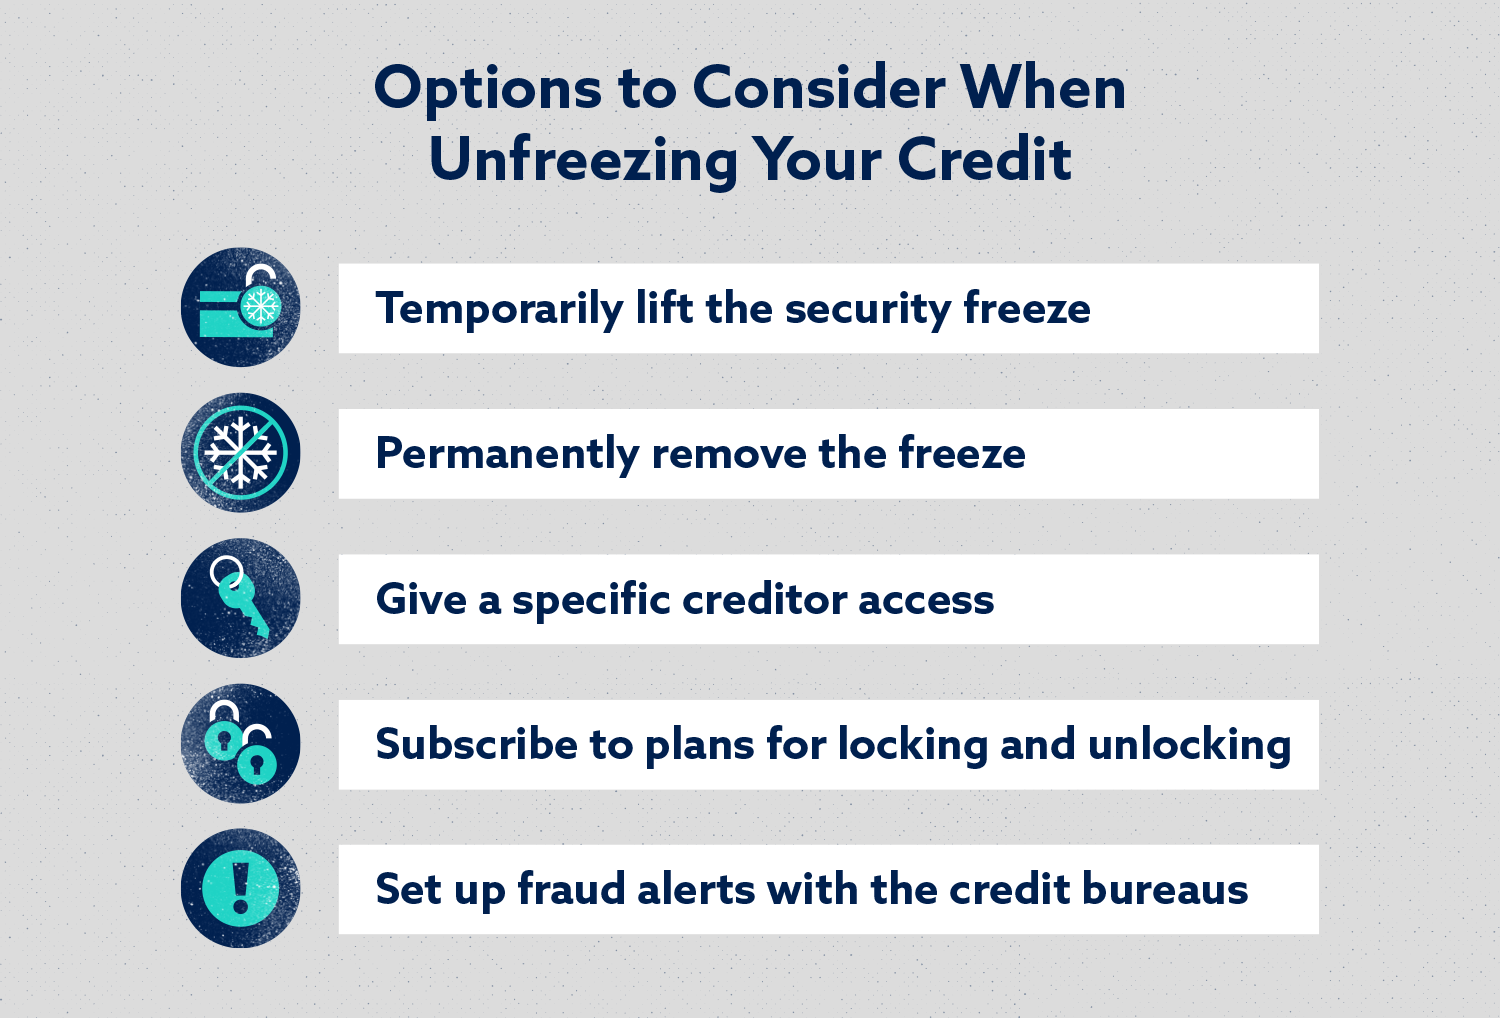 Options to Consider When Unfreezing Your Credit Image